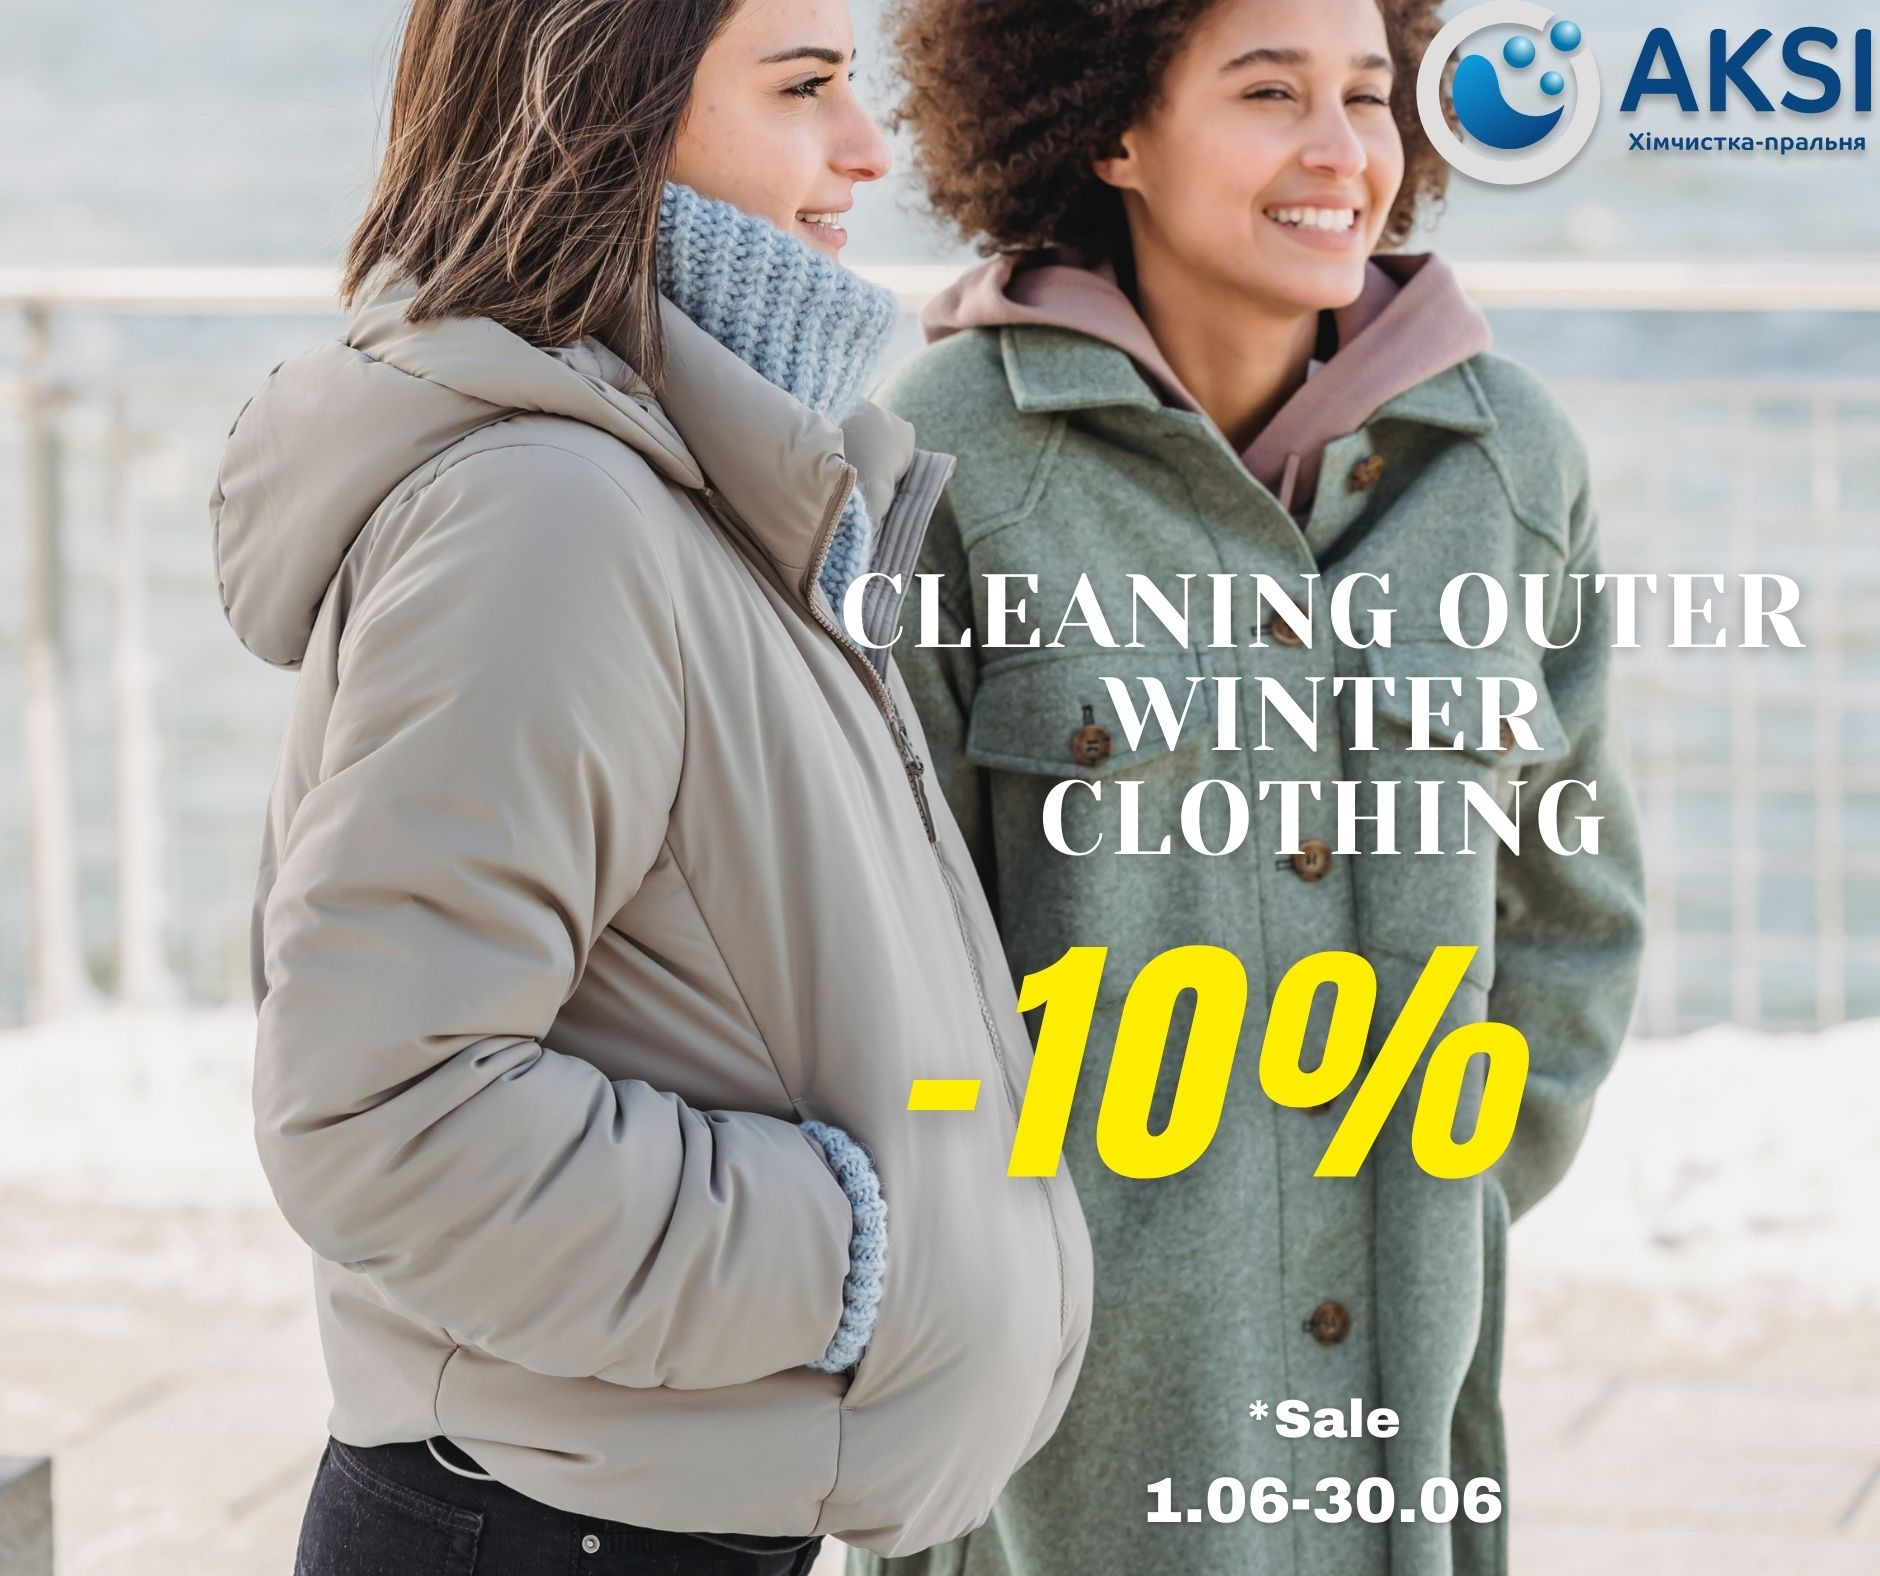 special offer dry cleaning aksi -10%